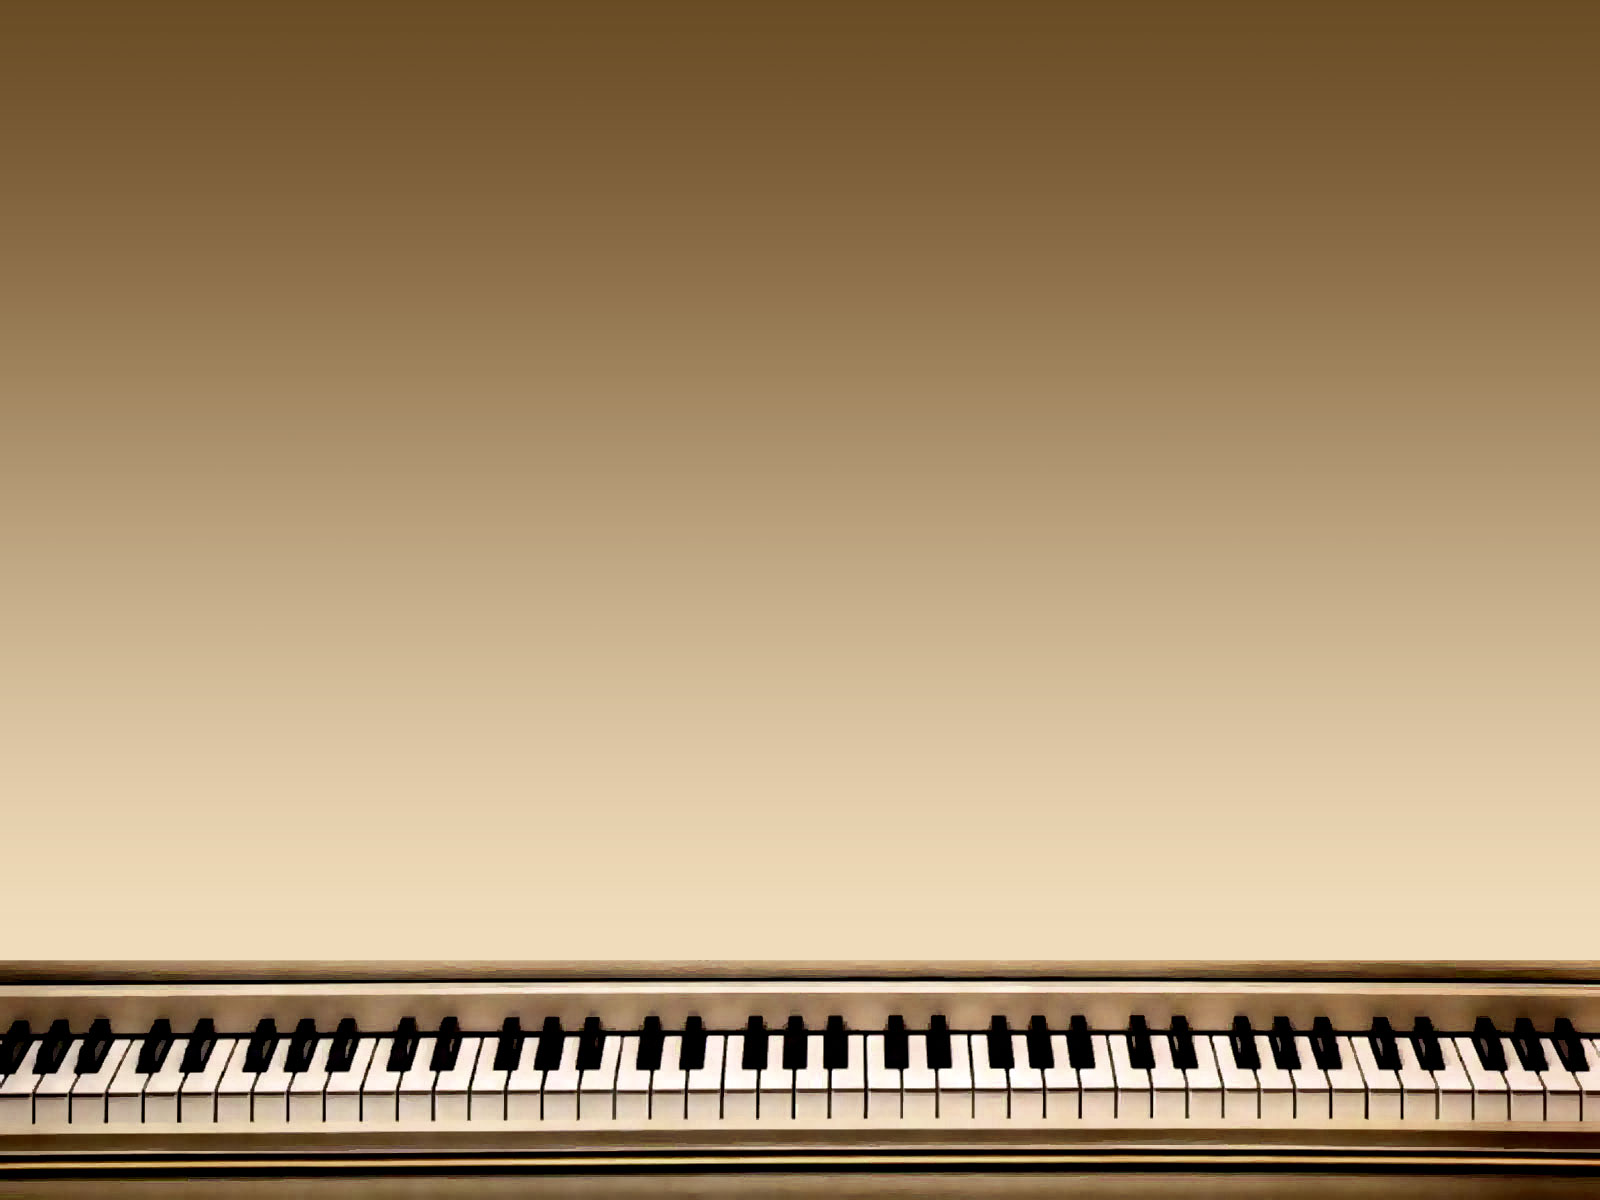 Piano Backgrounds For PowerPoint   Music PPT Templates 1600x1200